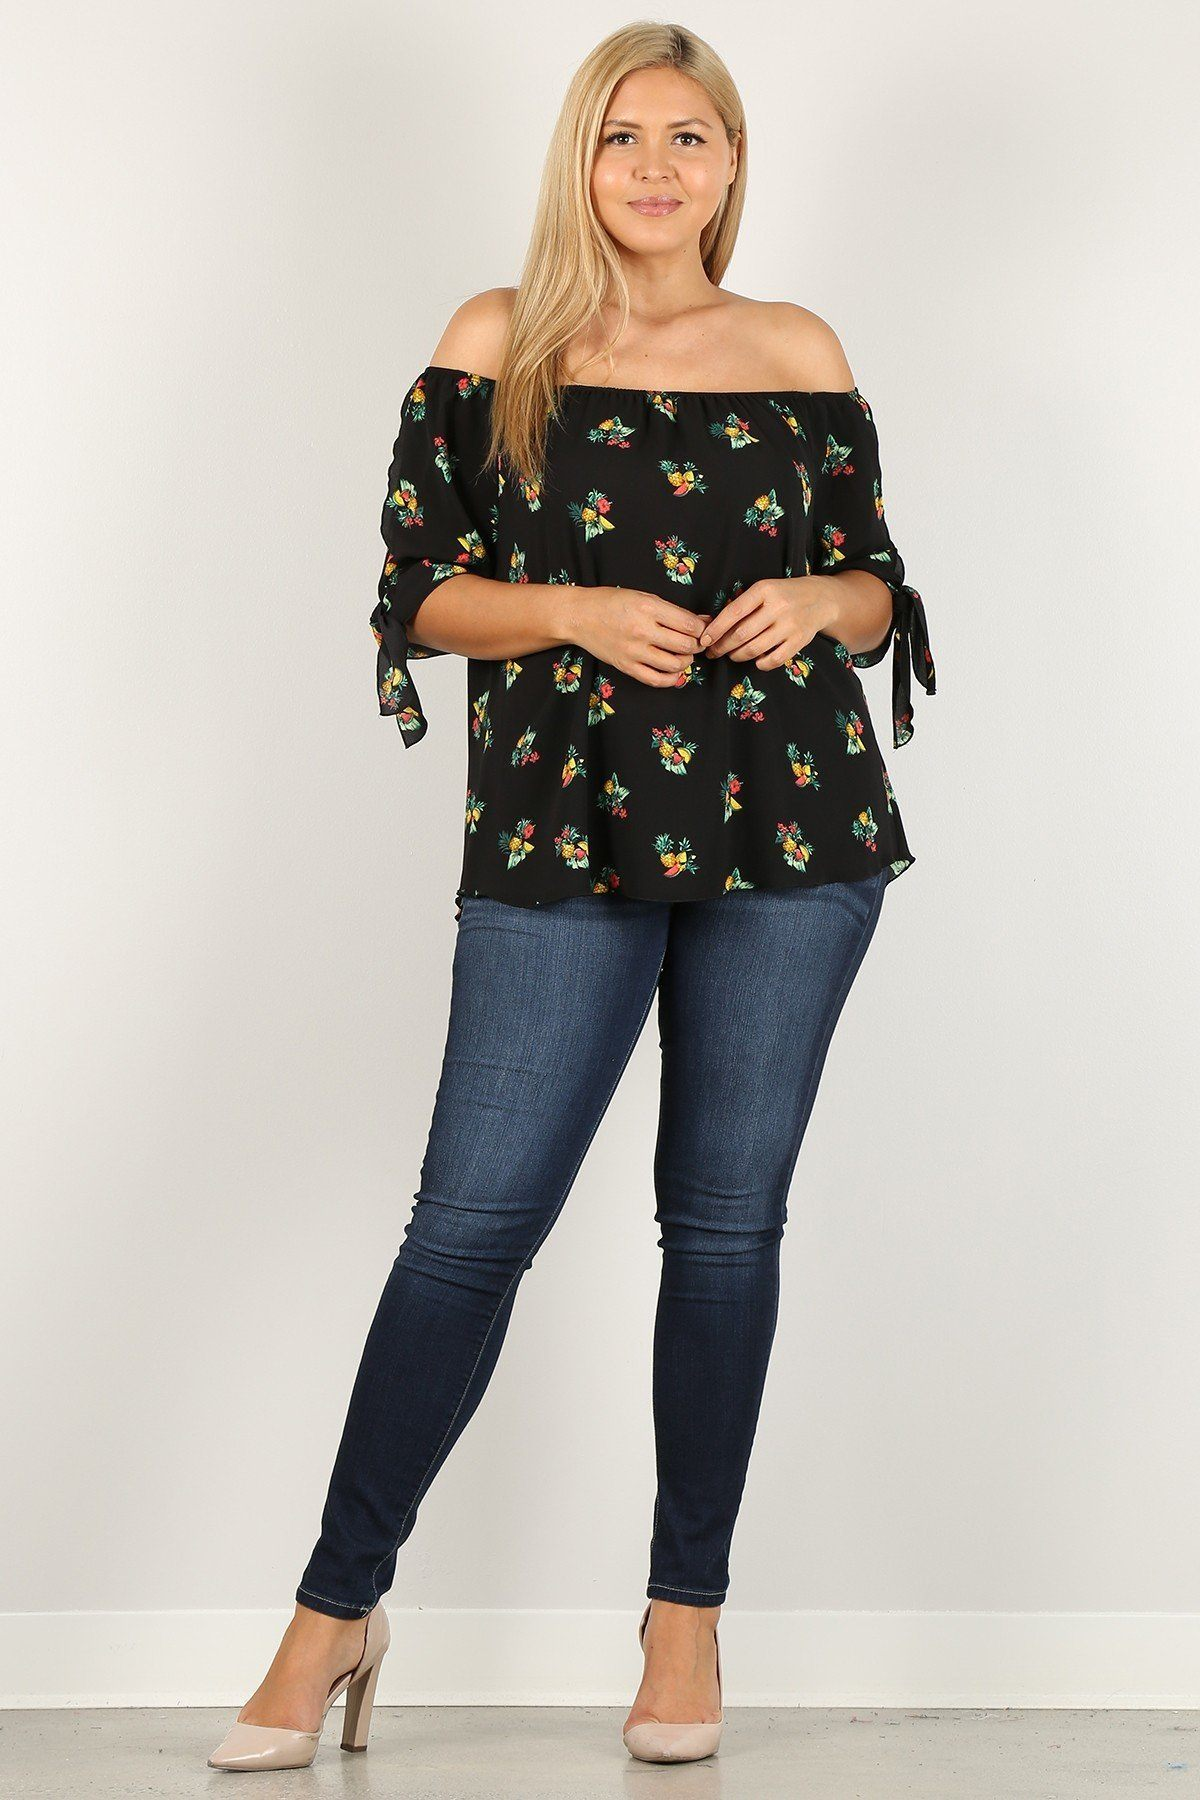 Plus Size Floral Print, Top Knitted Belle Boutique